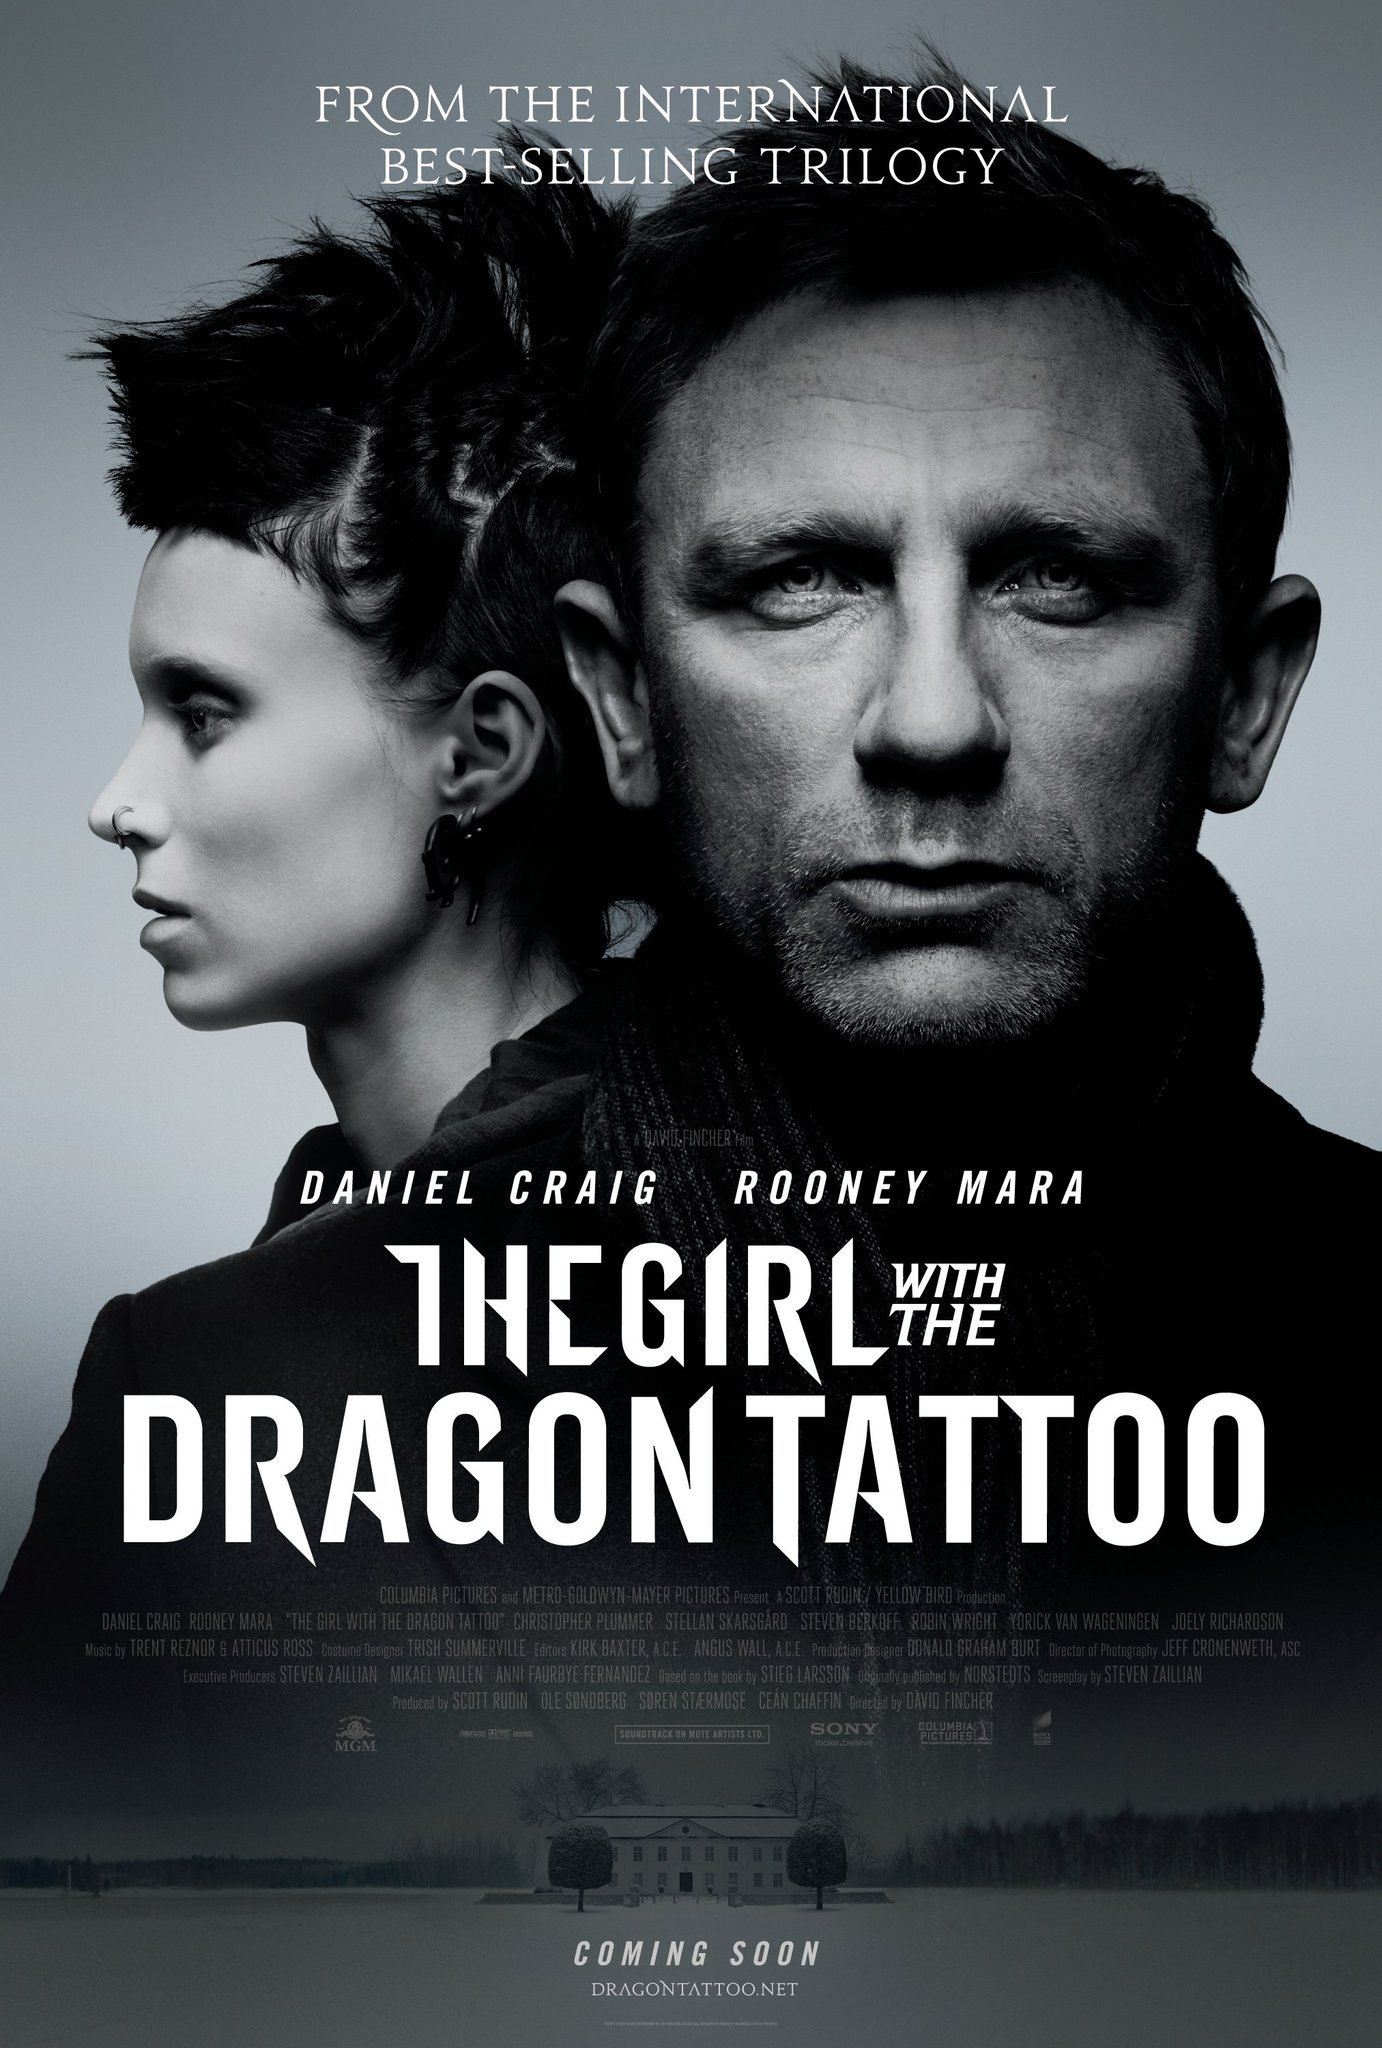 Dragon Tattoo.jpg